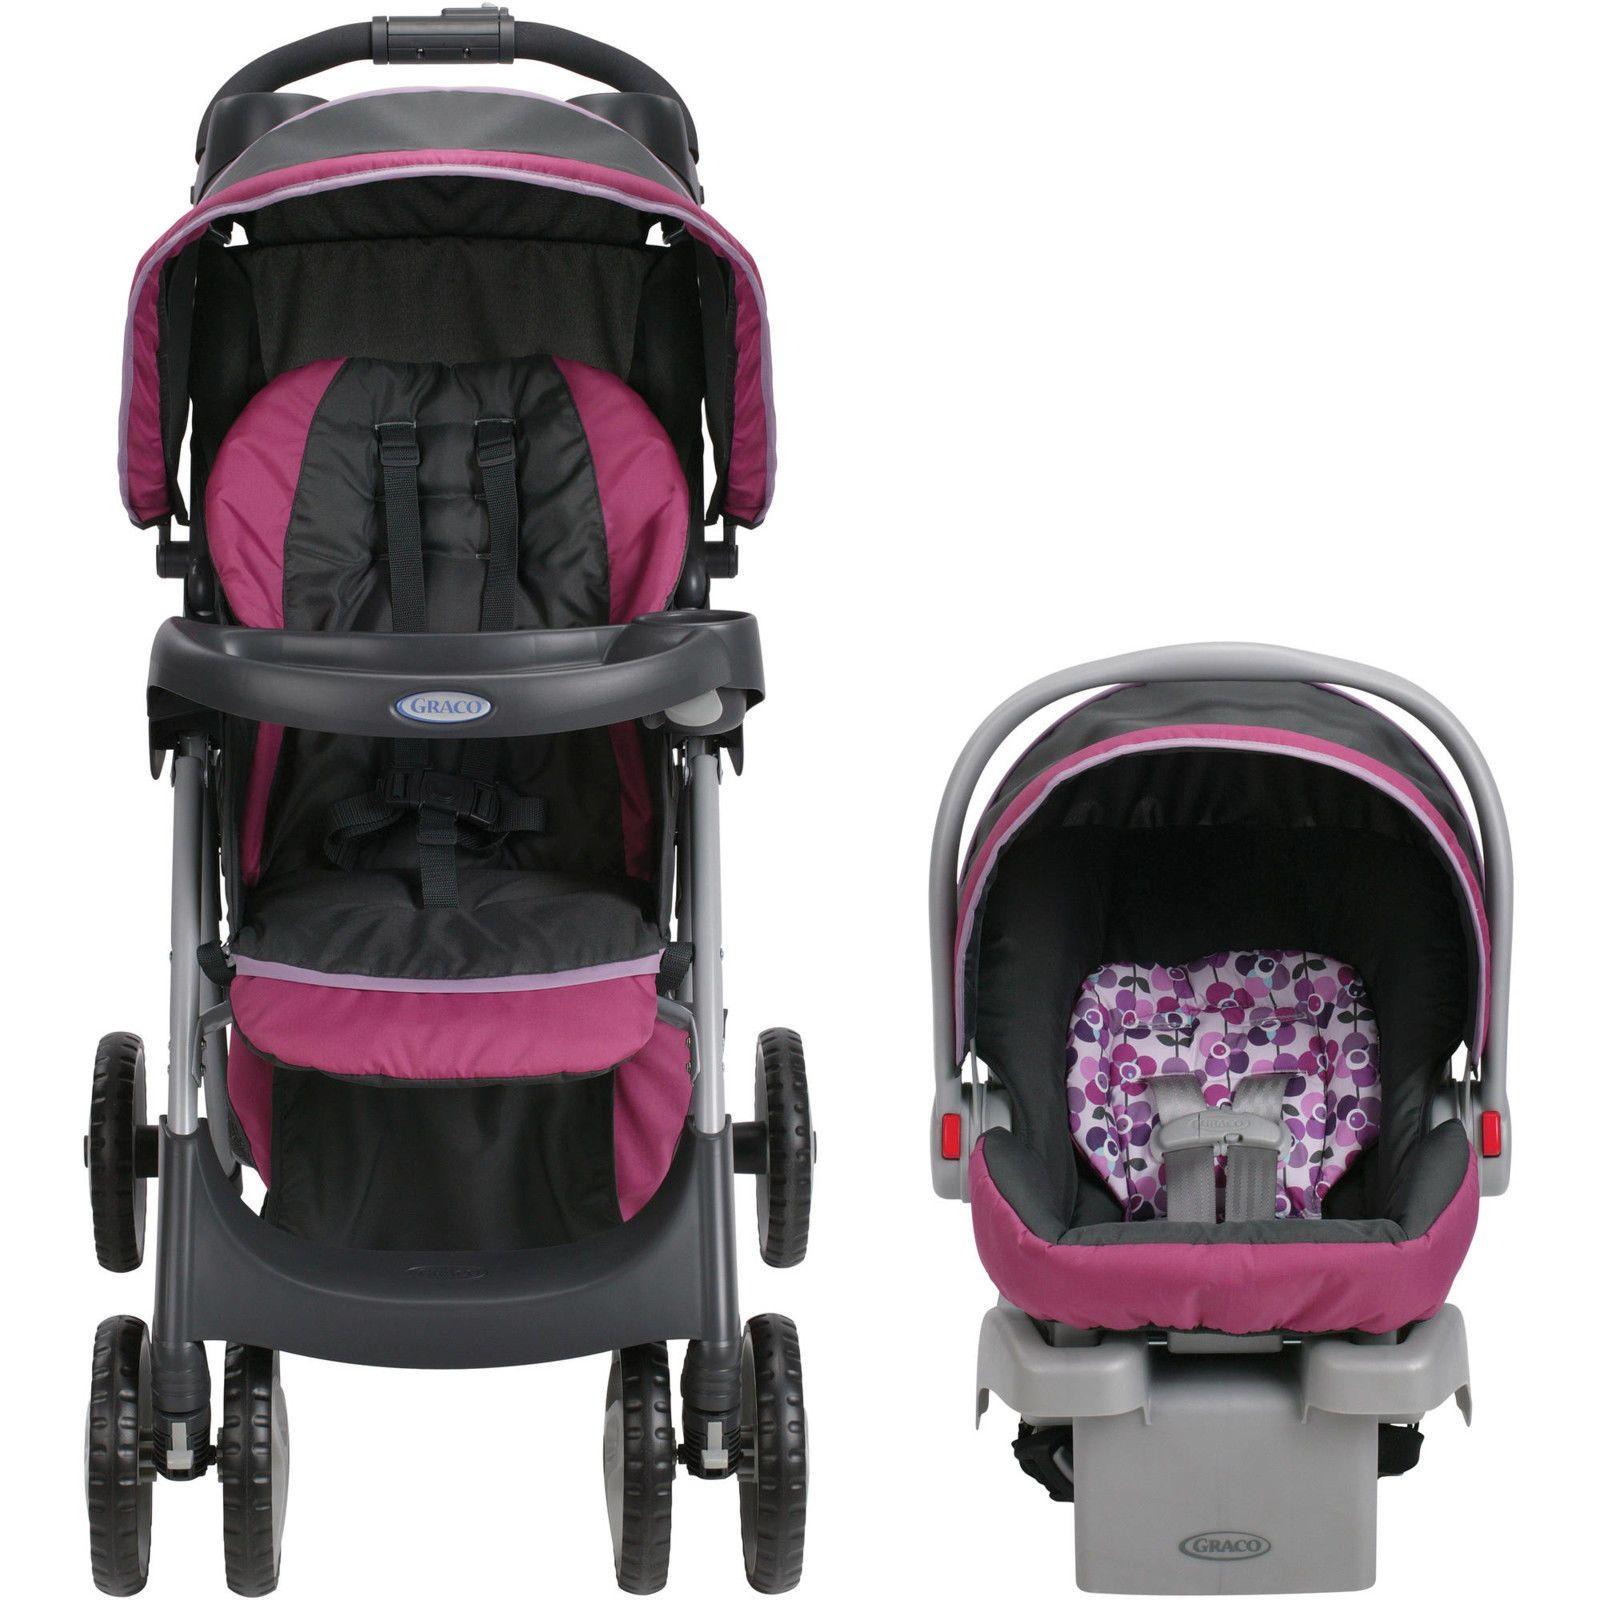 Toddler Baby Travel System Infant Car Seat Lightweight Safety Stroller By Graco